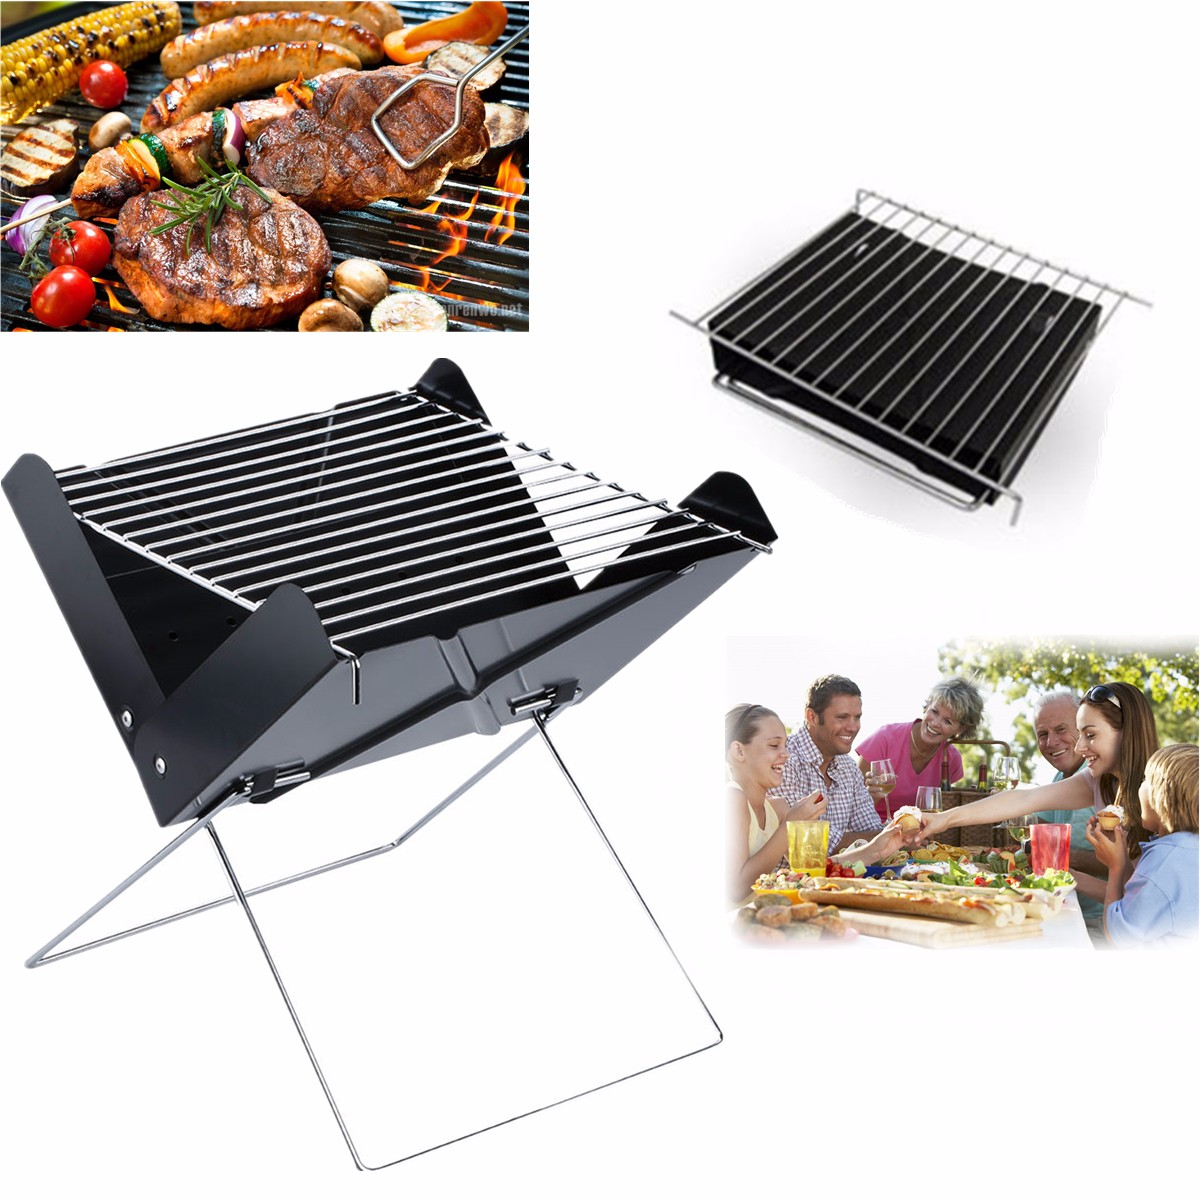 Portable Folding Charcoal Barbecue Oven BBQ Grill Garden Outdoor Picnic Camping